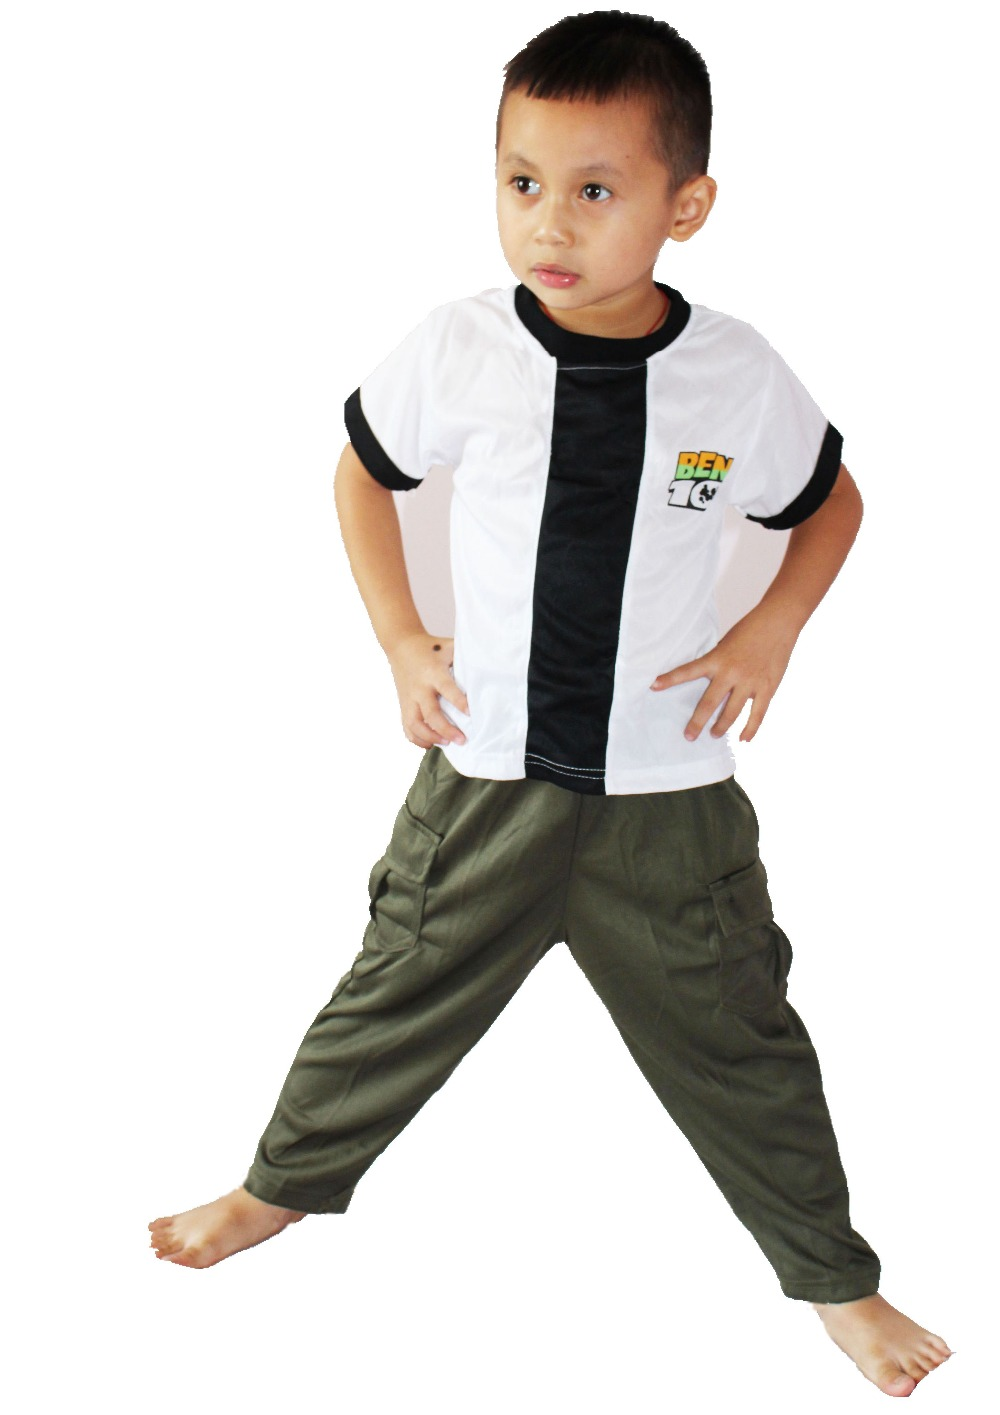 Kid Cosplay Halloween Party Ben 10: Race Against Time Clothing,Boy BEN-10 Role-playing Clothing,Short Sleeve T-shirt  Size:S-XXL